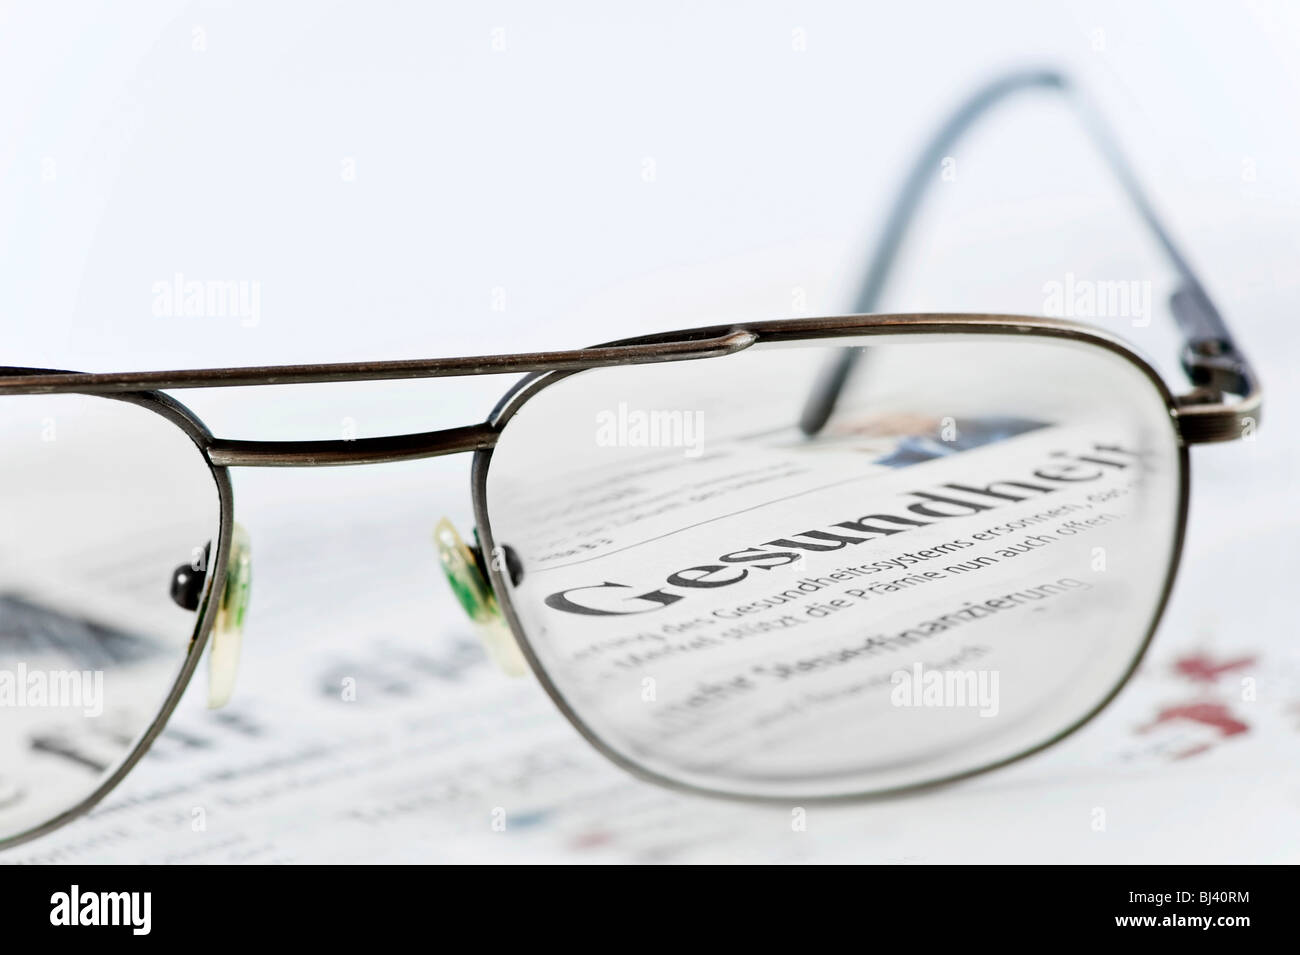 The headline Gesundheit, health seen through glasses - Stock Image